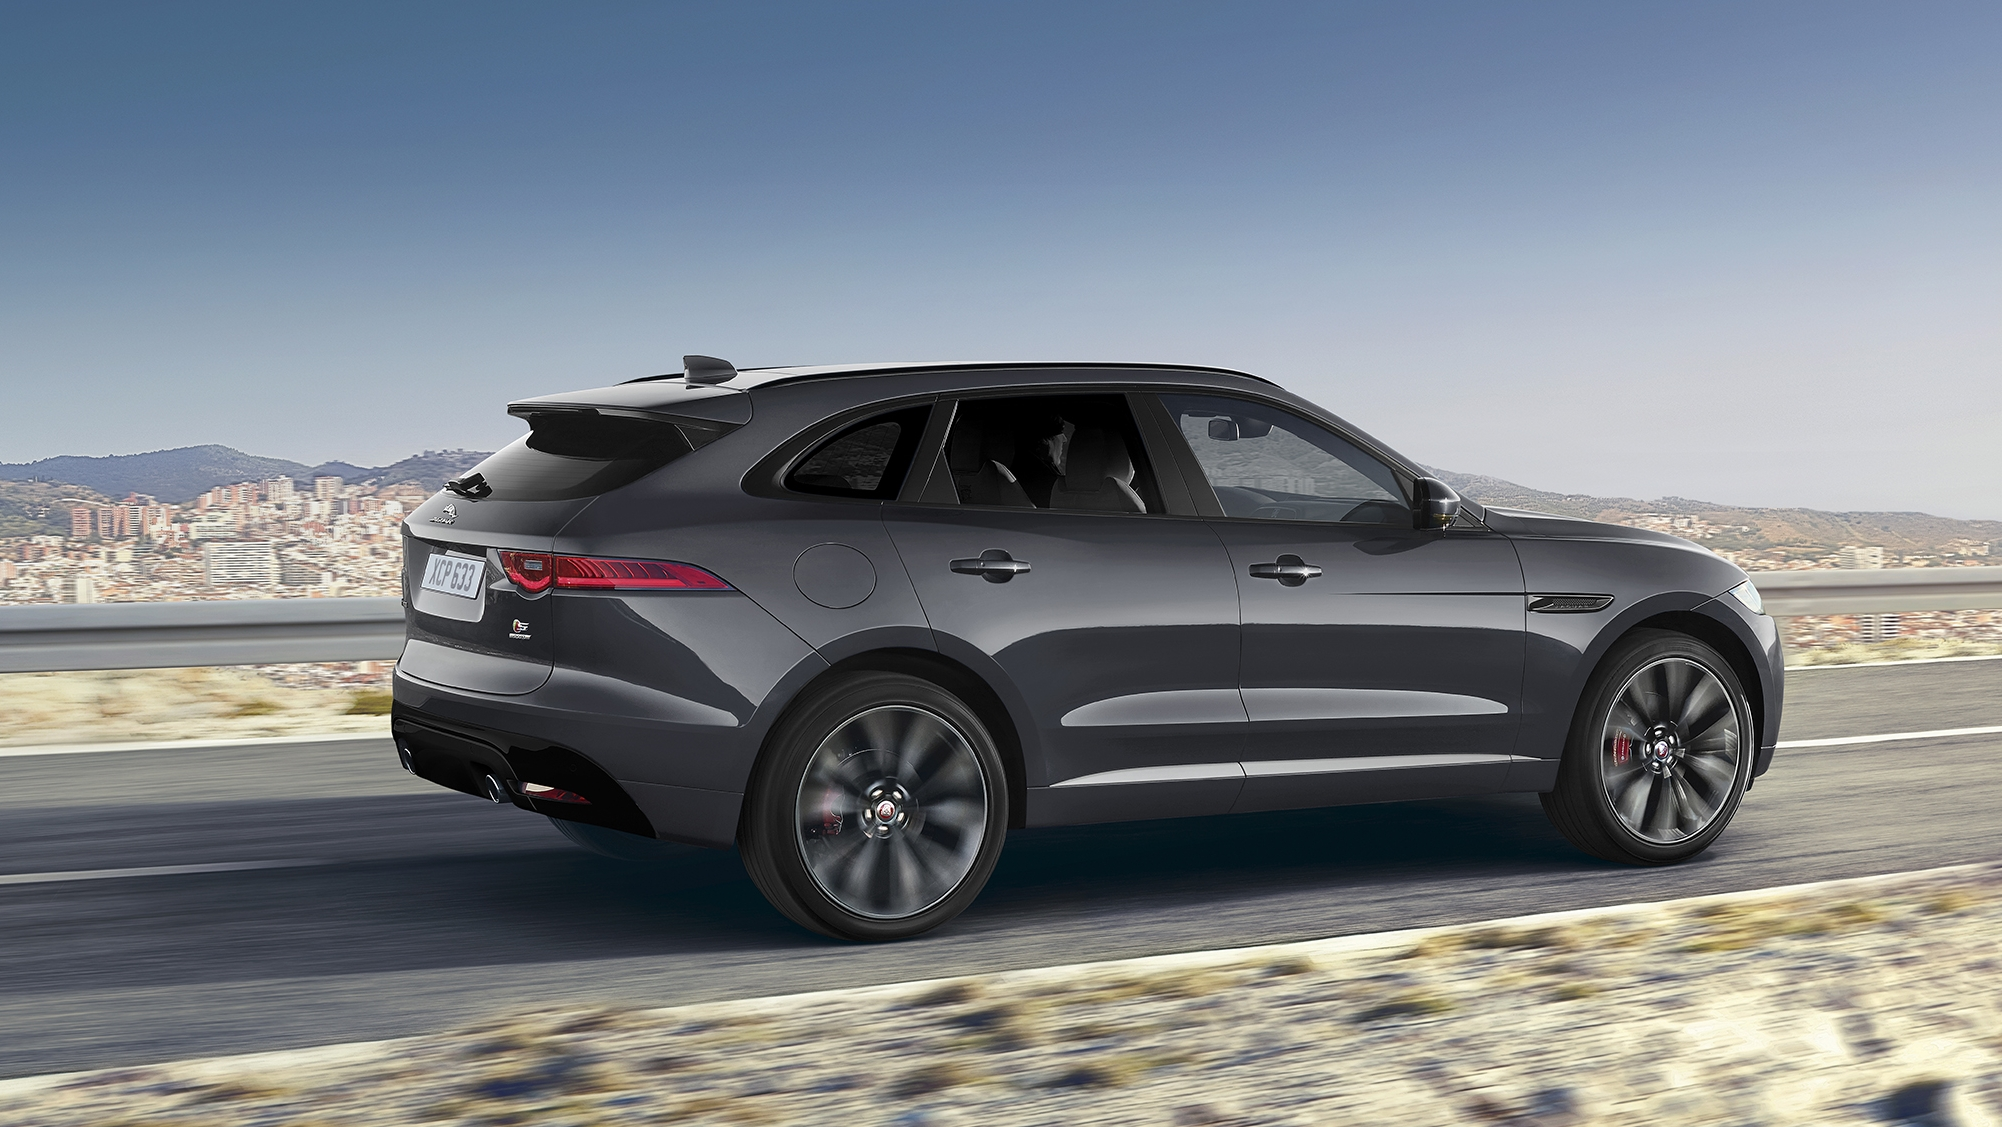 2017 jaguar f pace designer edition top speed. Black Bedroom Furniture Sets. Home Design Ideas